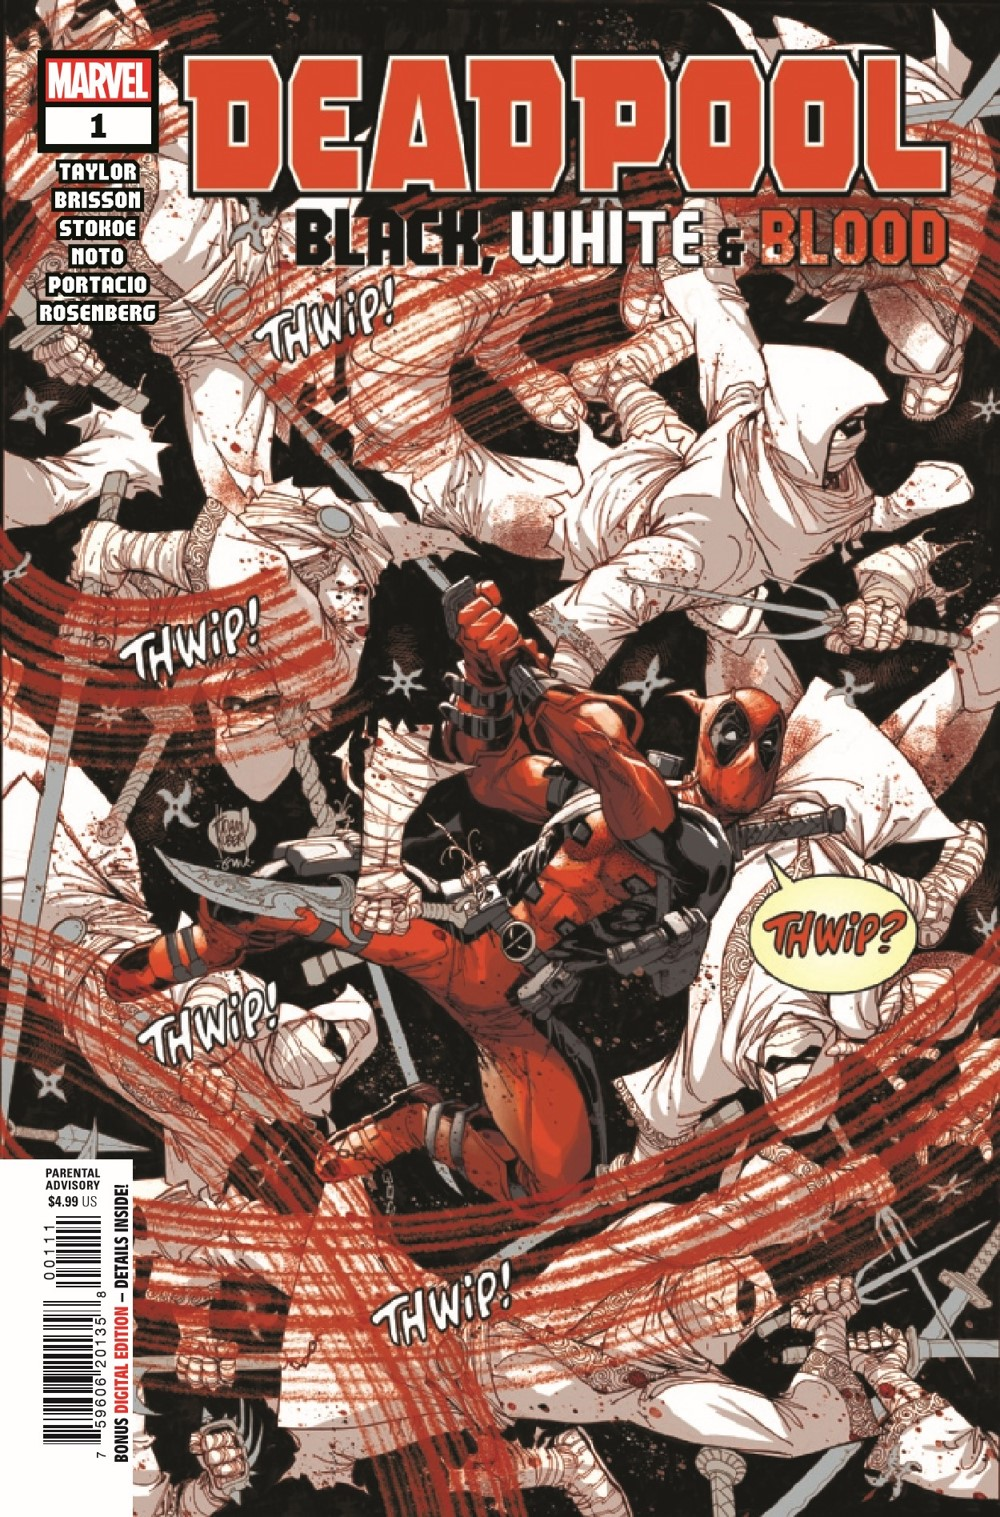 DPOOLBLKWHBL2021001_Preview-1 ComicList Previews: DEADPOOL BLACK WHITE AND BLOOD #1 (OF 4)